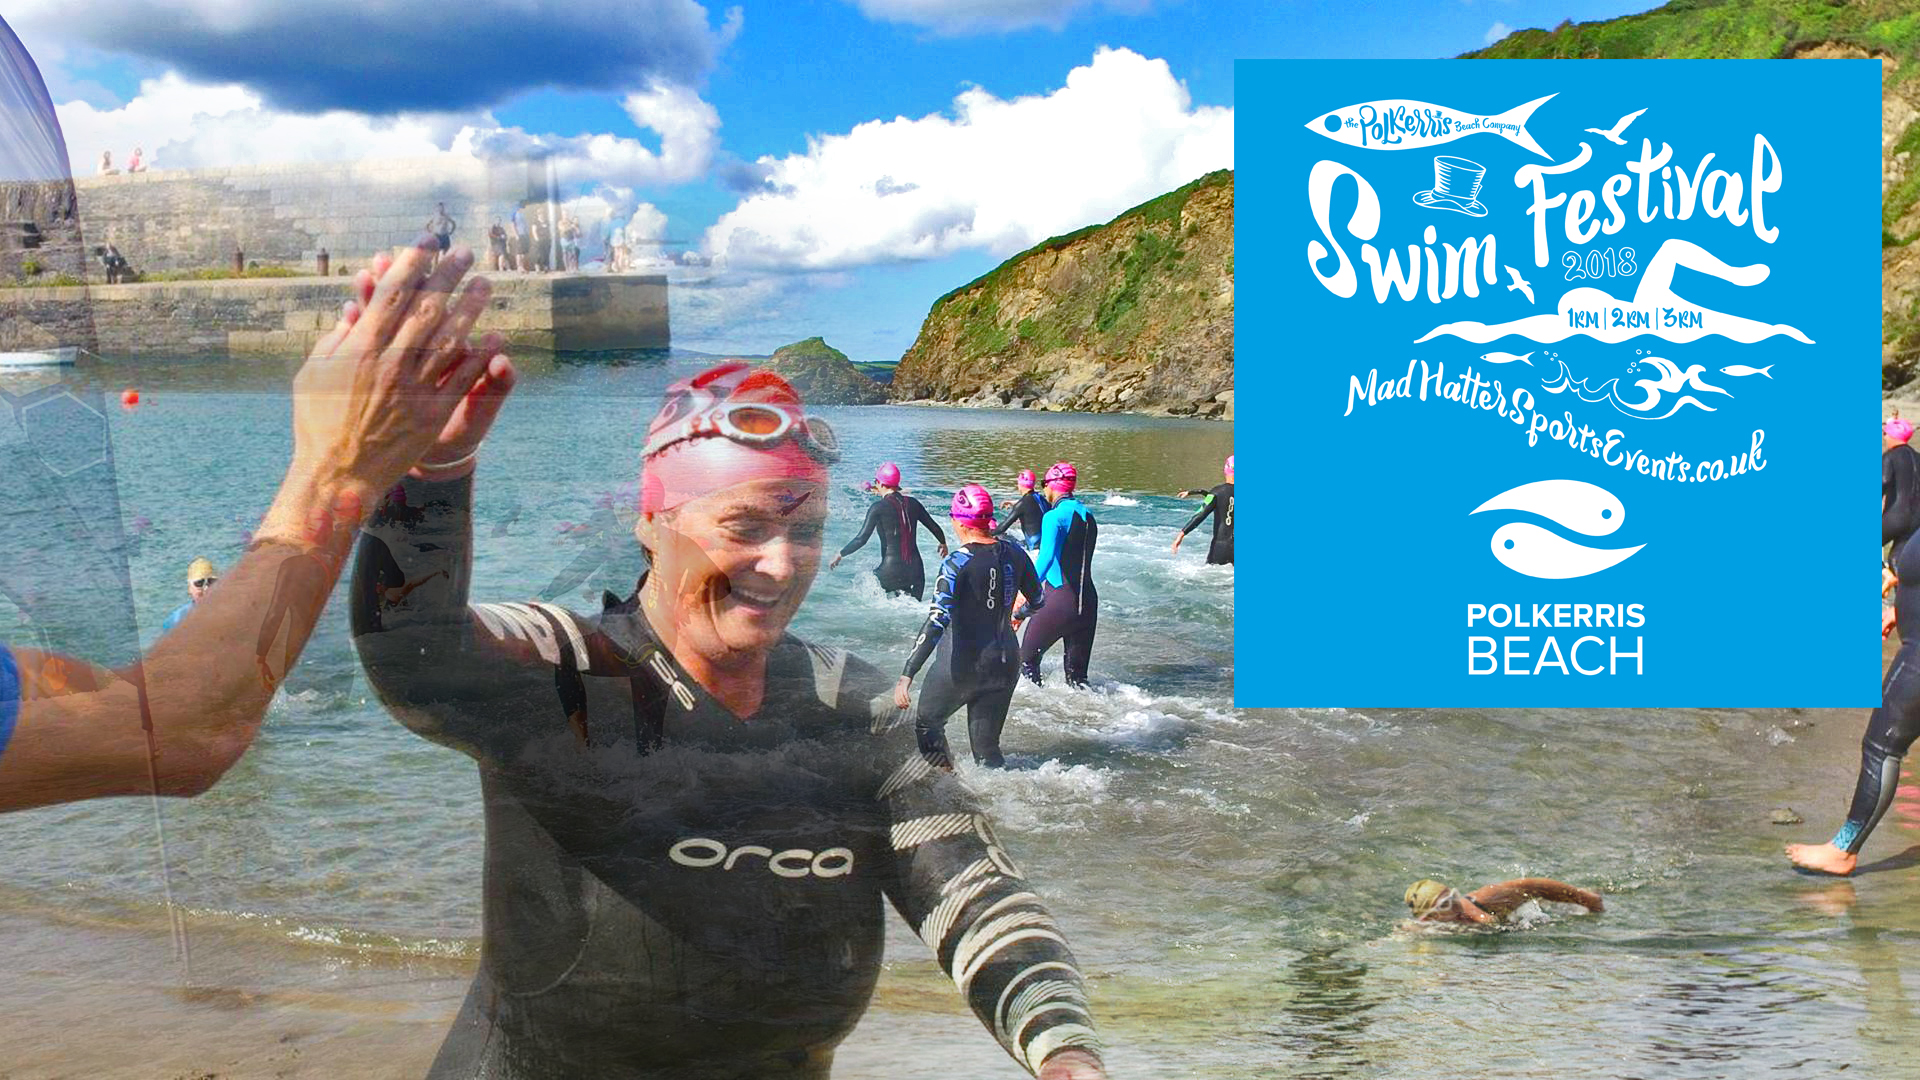 Sea Swim Festival Cornwall 2018